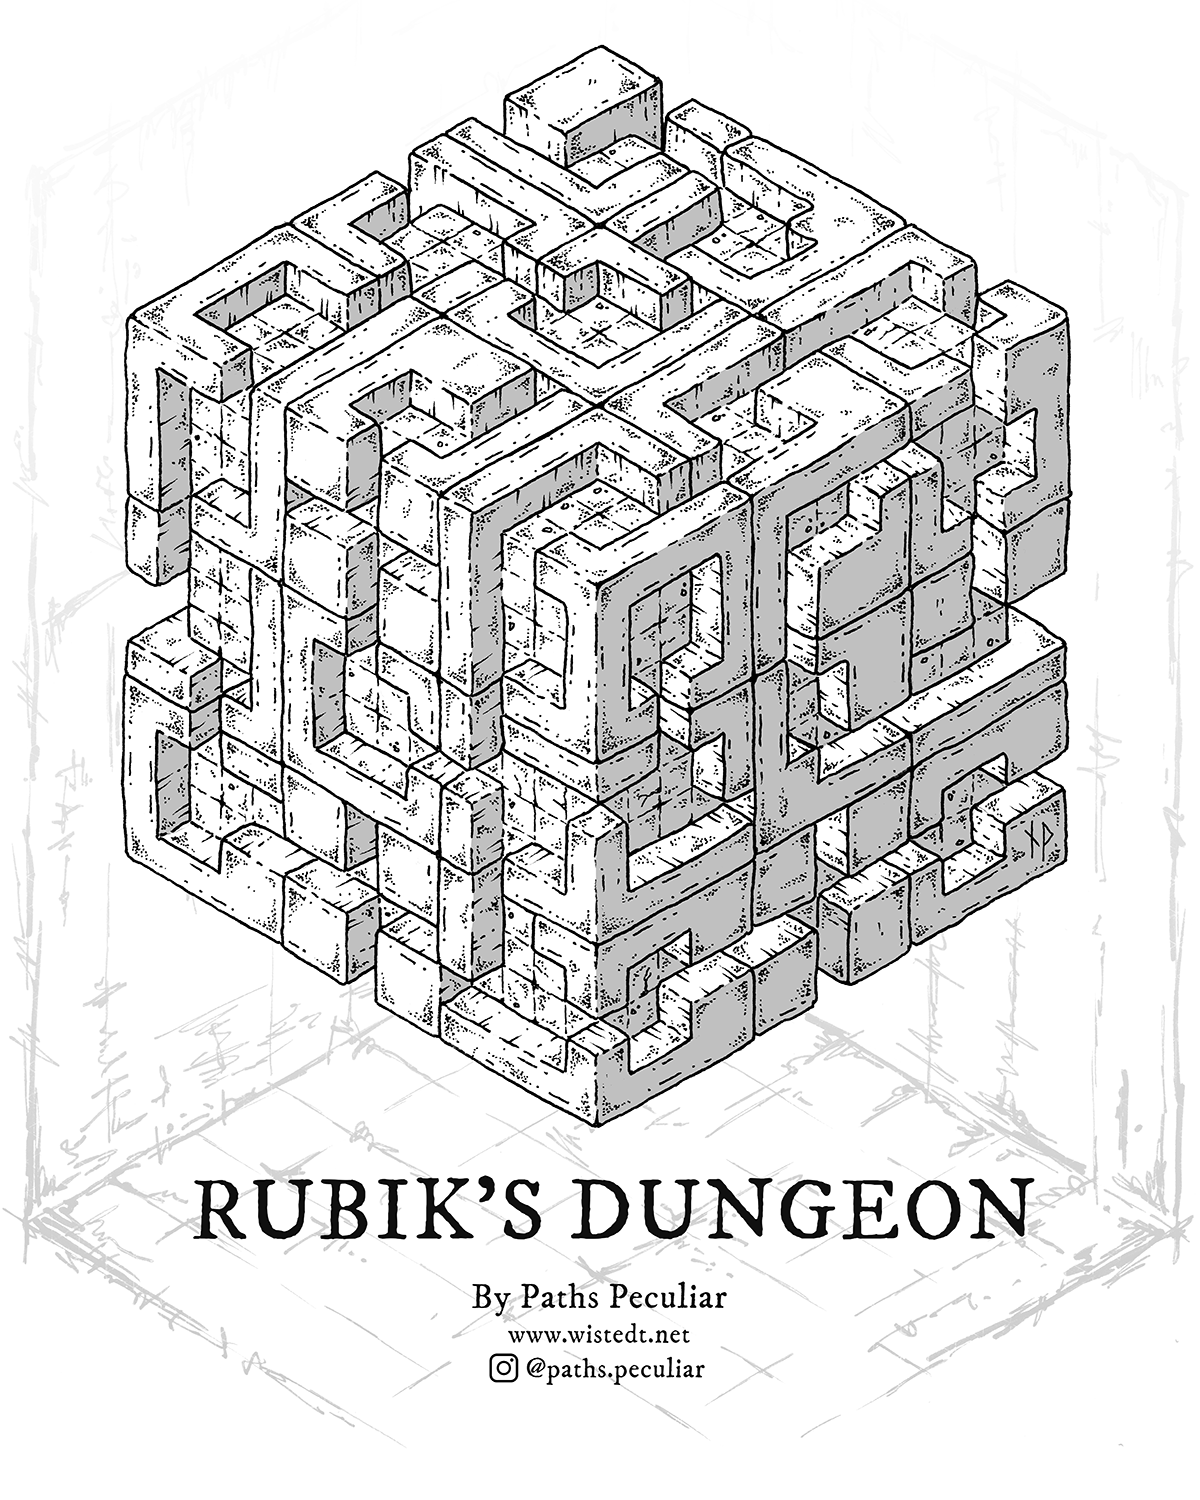 Rubik's Dungeon, cube-shaped isometric dungeon map